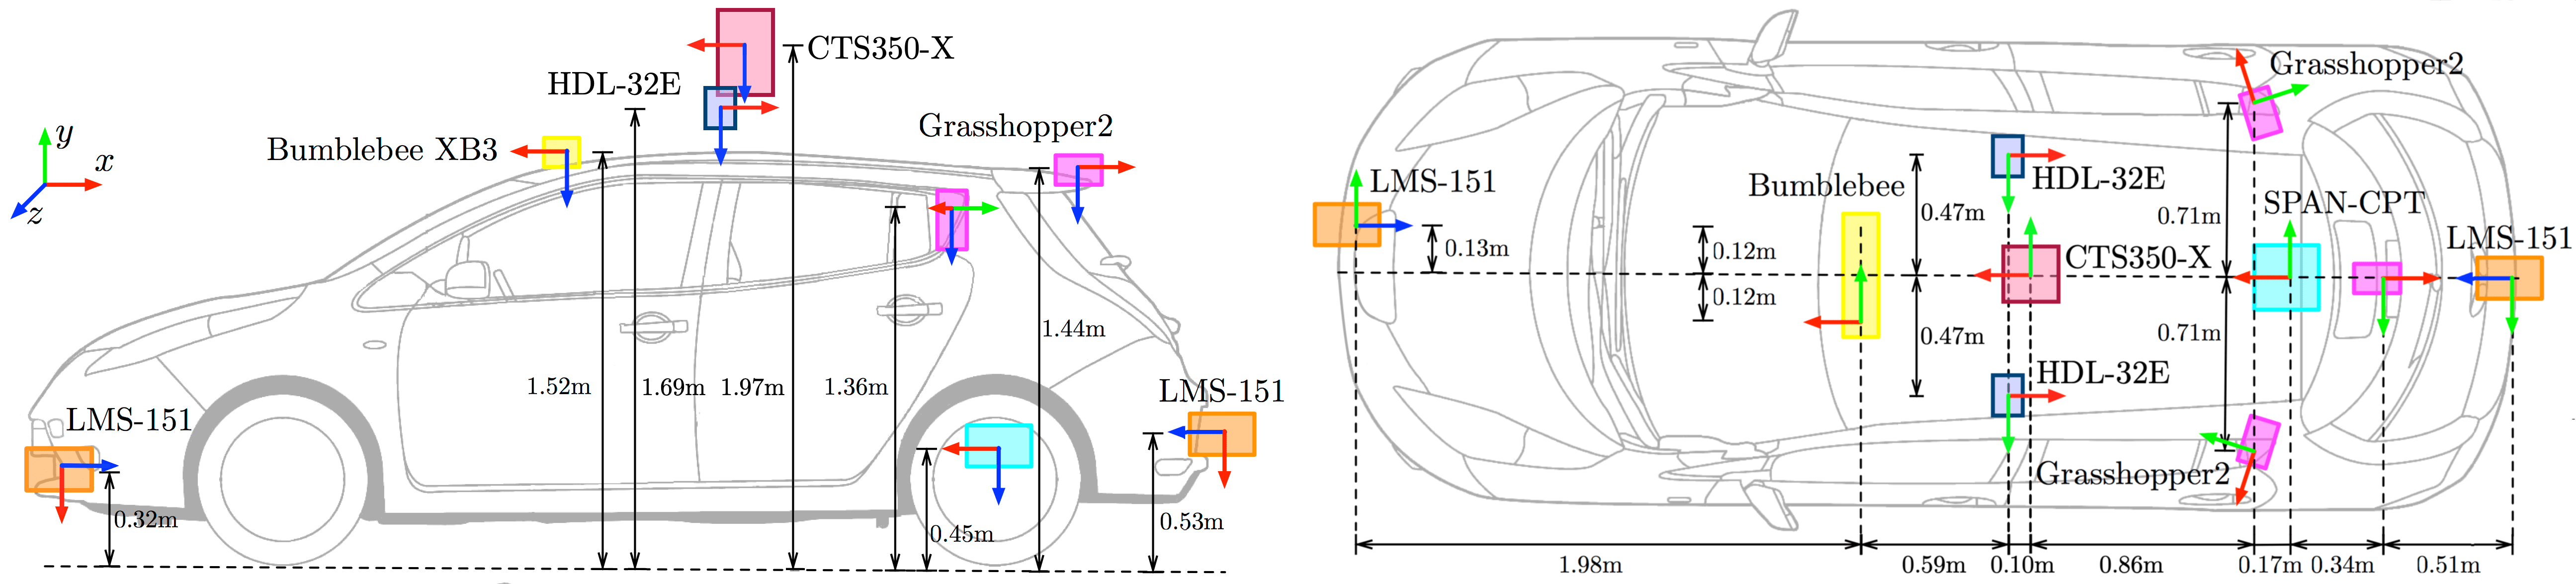 Oxford Radar Radar RobotCar Dataset  sensor positions on vehicle. <br>Coordinate frames use the convention x = forward (red), y = right (green), z = down (blue).